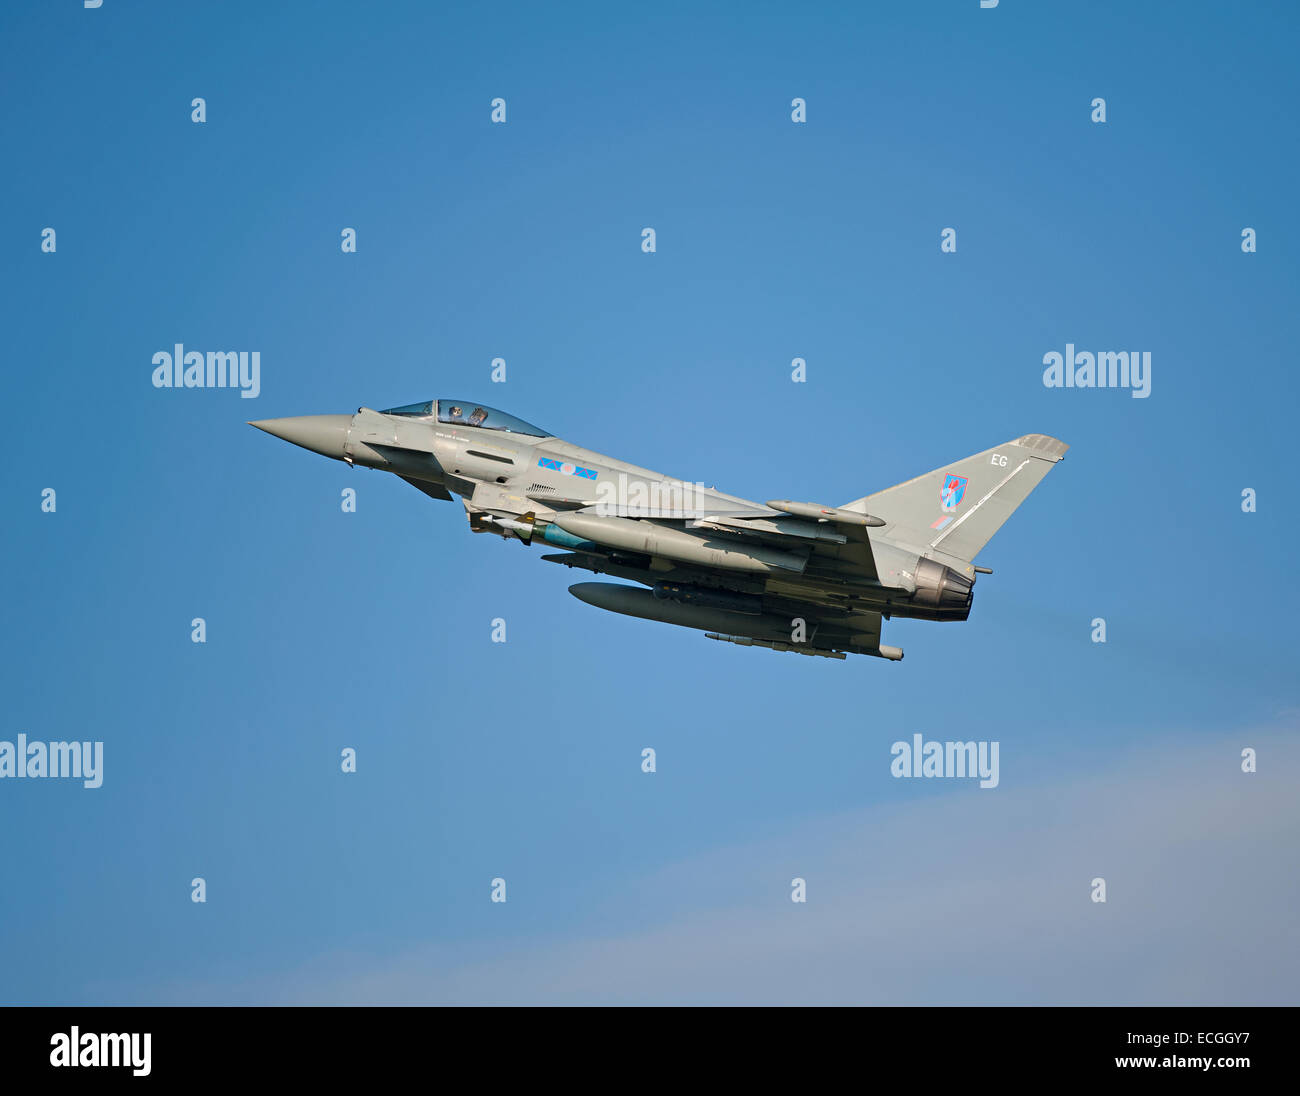 Eurofighter Typhoon FRG4 on low approach to RAF Lossiemouth, Scotland.  SCO 9344. - Stock Image